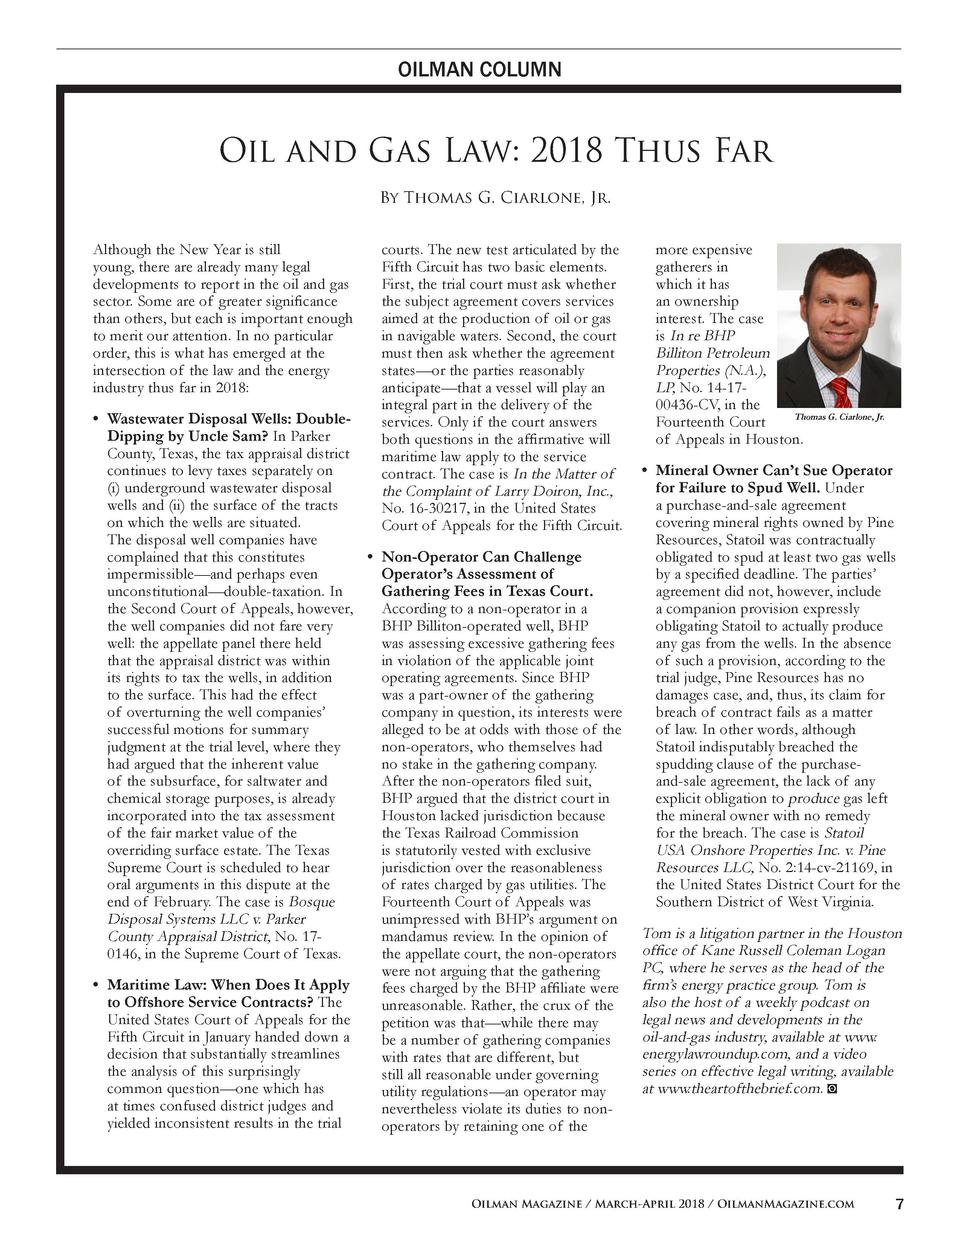 OILMAN COLUMN  Oil and Gas Law  2018 Thus Far By Thomas G. Ciarlone, Jr. Although the New Year is still young, there are a...